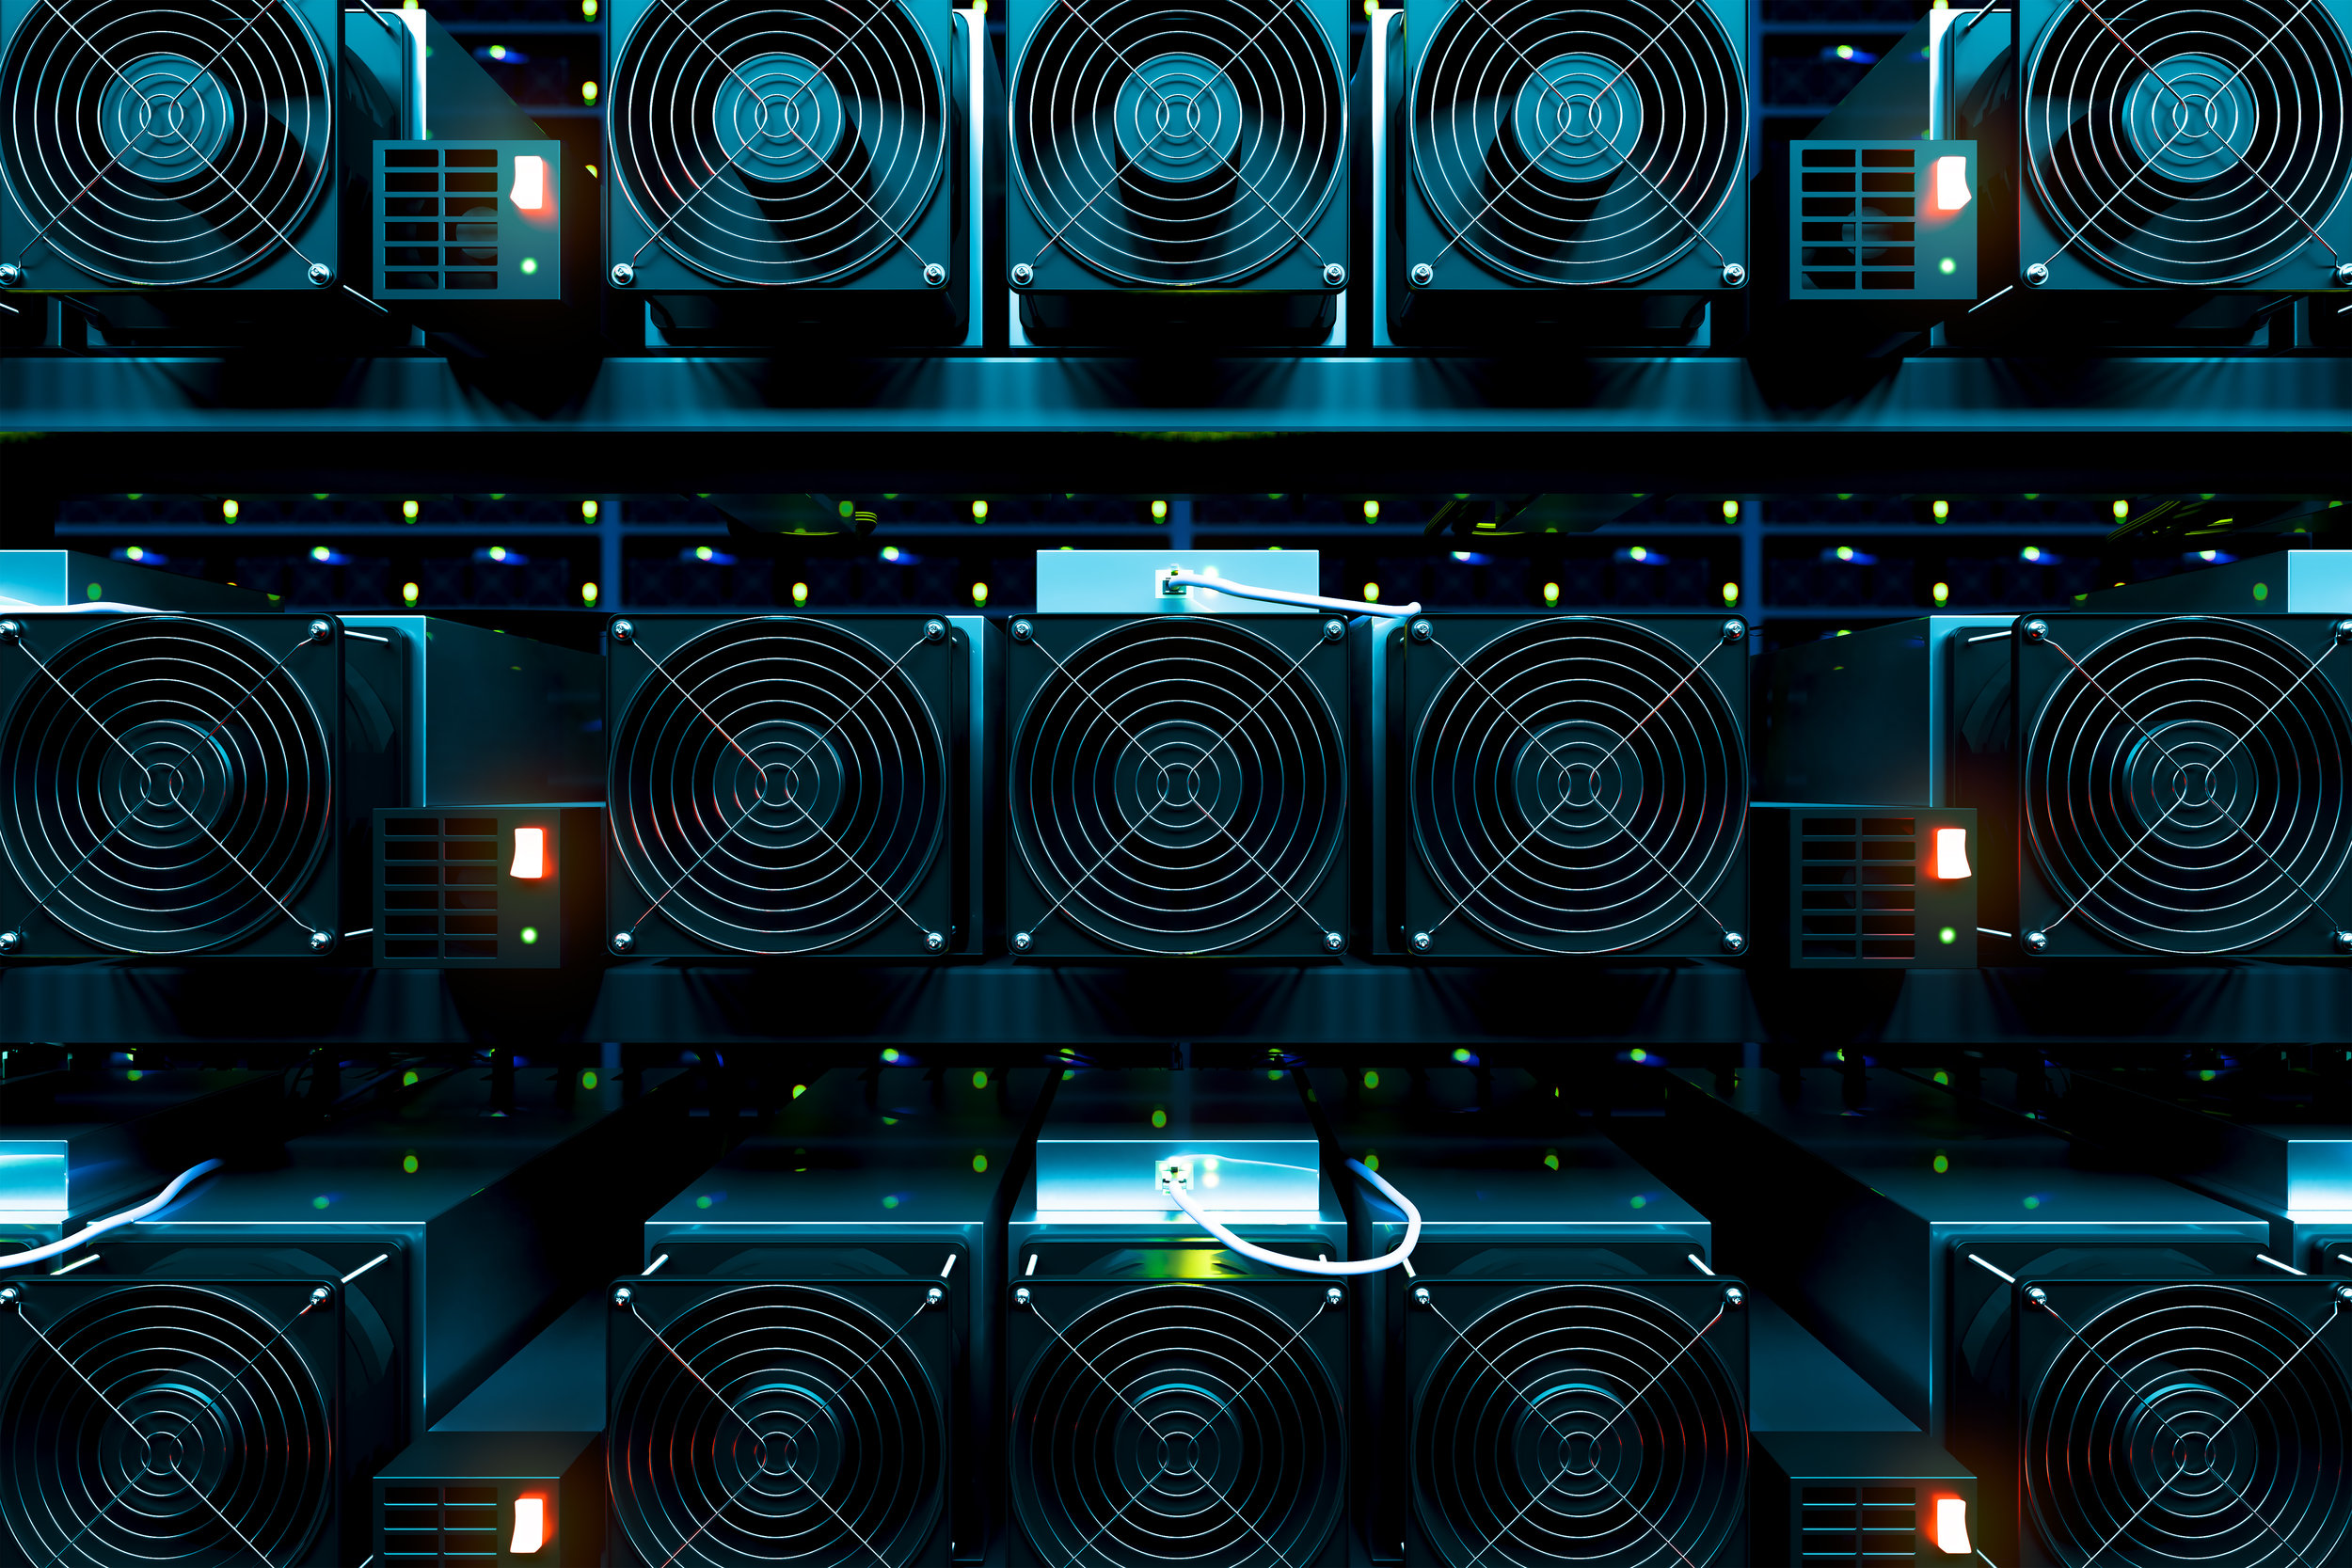 You want it?We can get it. - Let us know what you're looking for and we'll make sure we find it. Looking for a couple GPUs? No problem. Looking for 100 Antminers? No problem. We've got you covered.Contact us